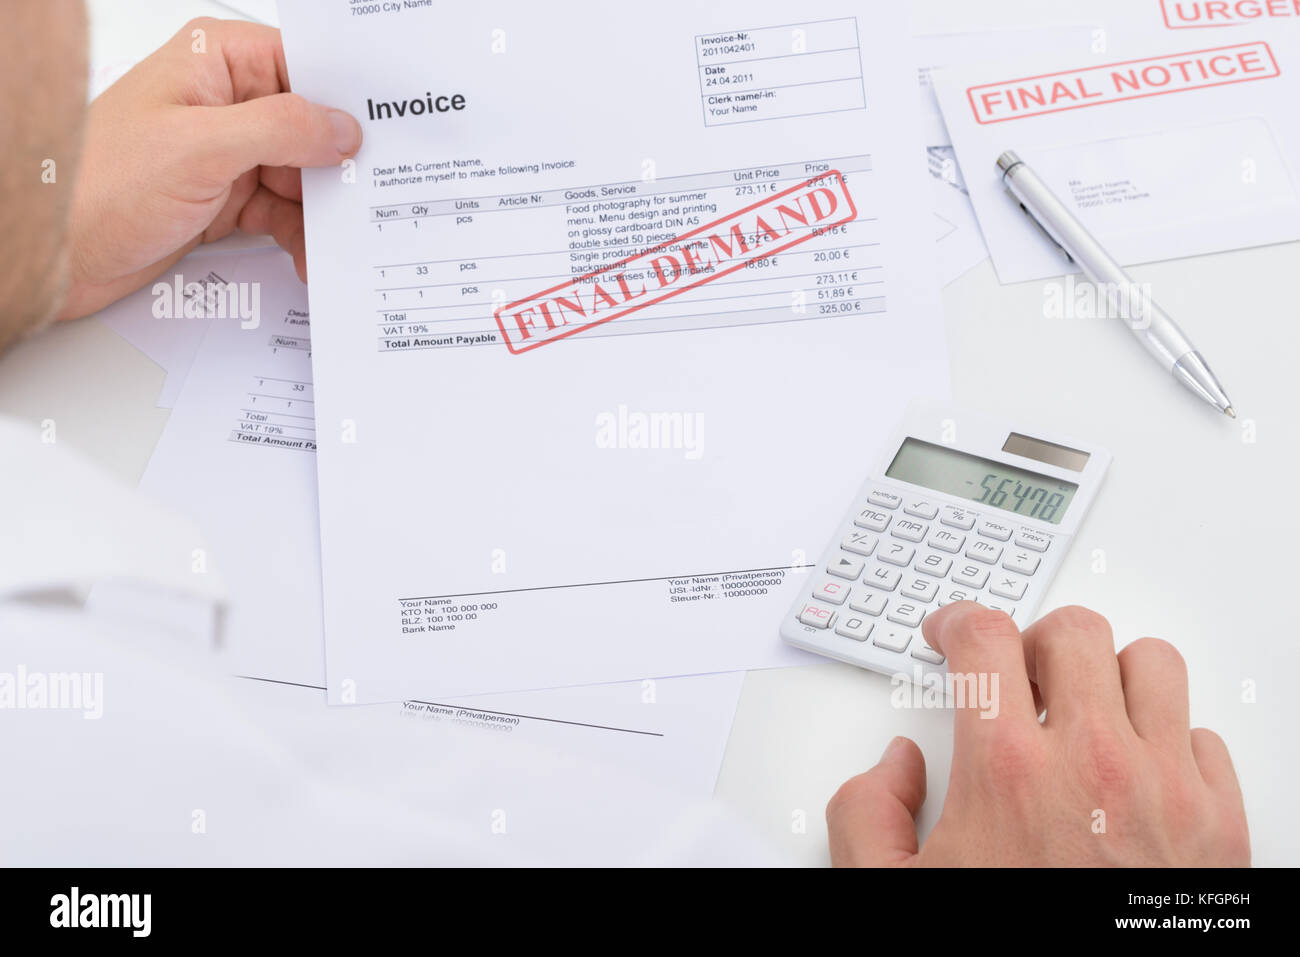 Man Calculating Invoice With Final Demand Notification - Stock Image